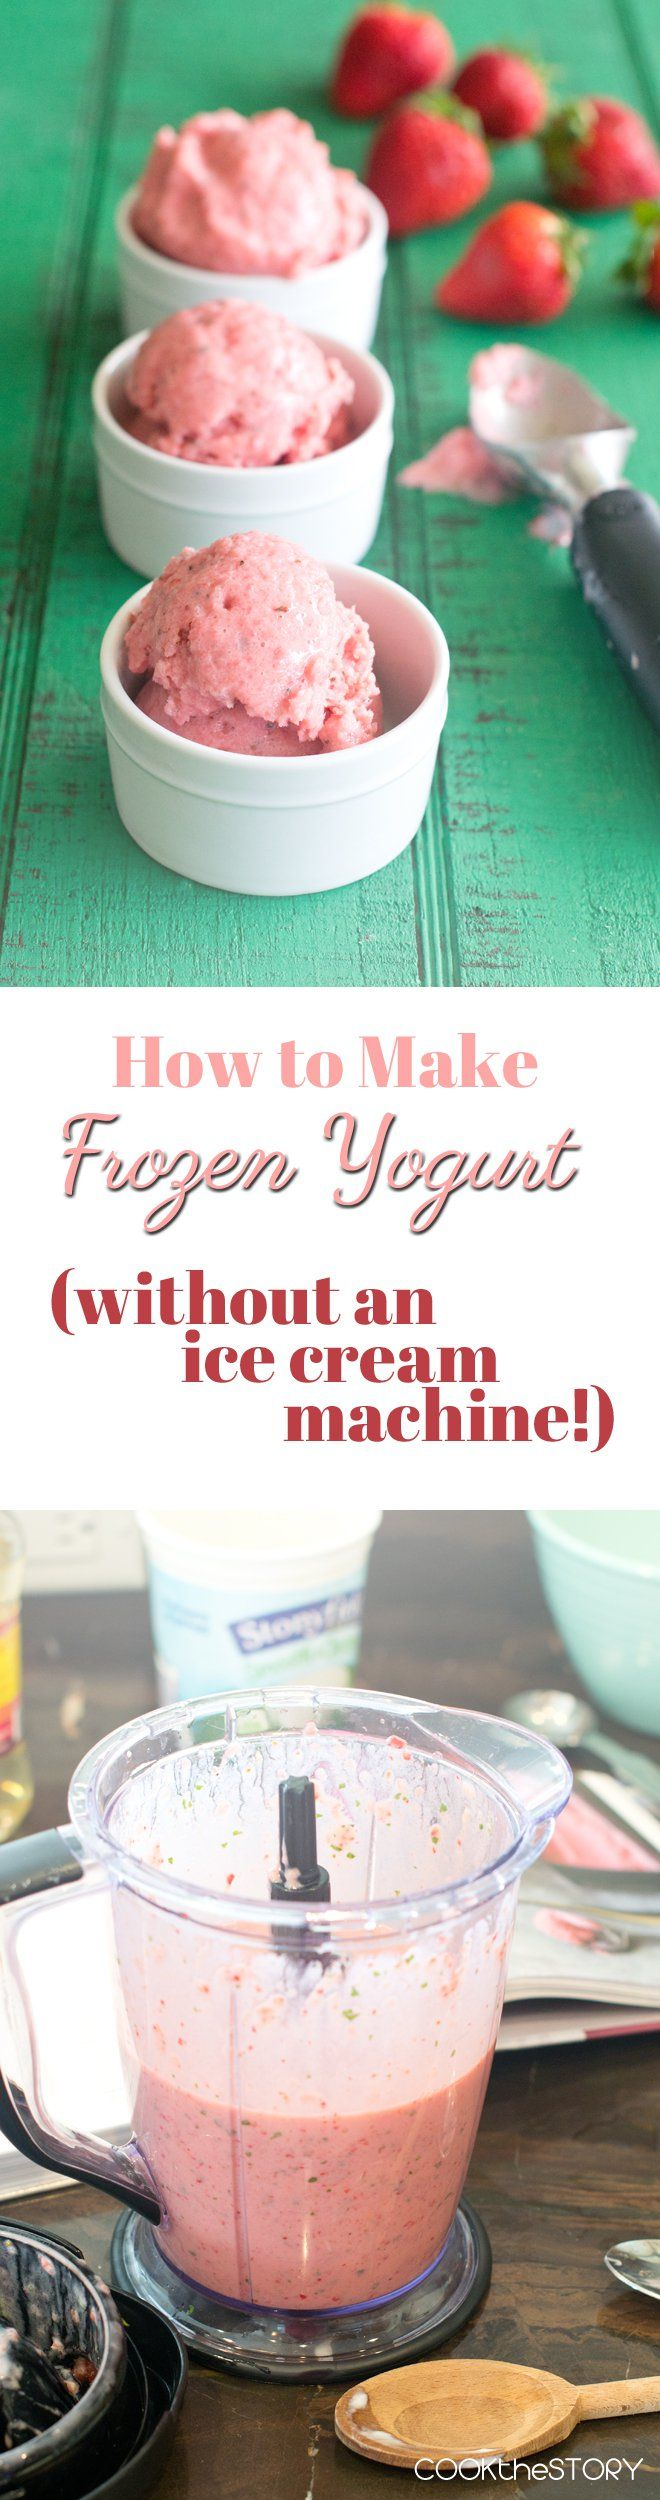 15 Homemade Ice Cream Recipes That Don't Require an Ice Cream Maker